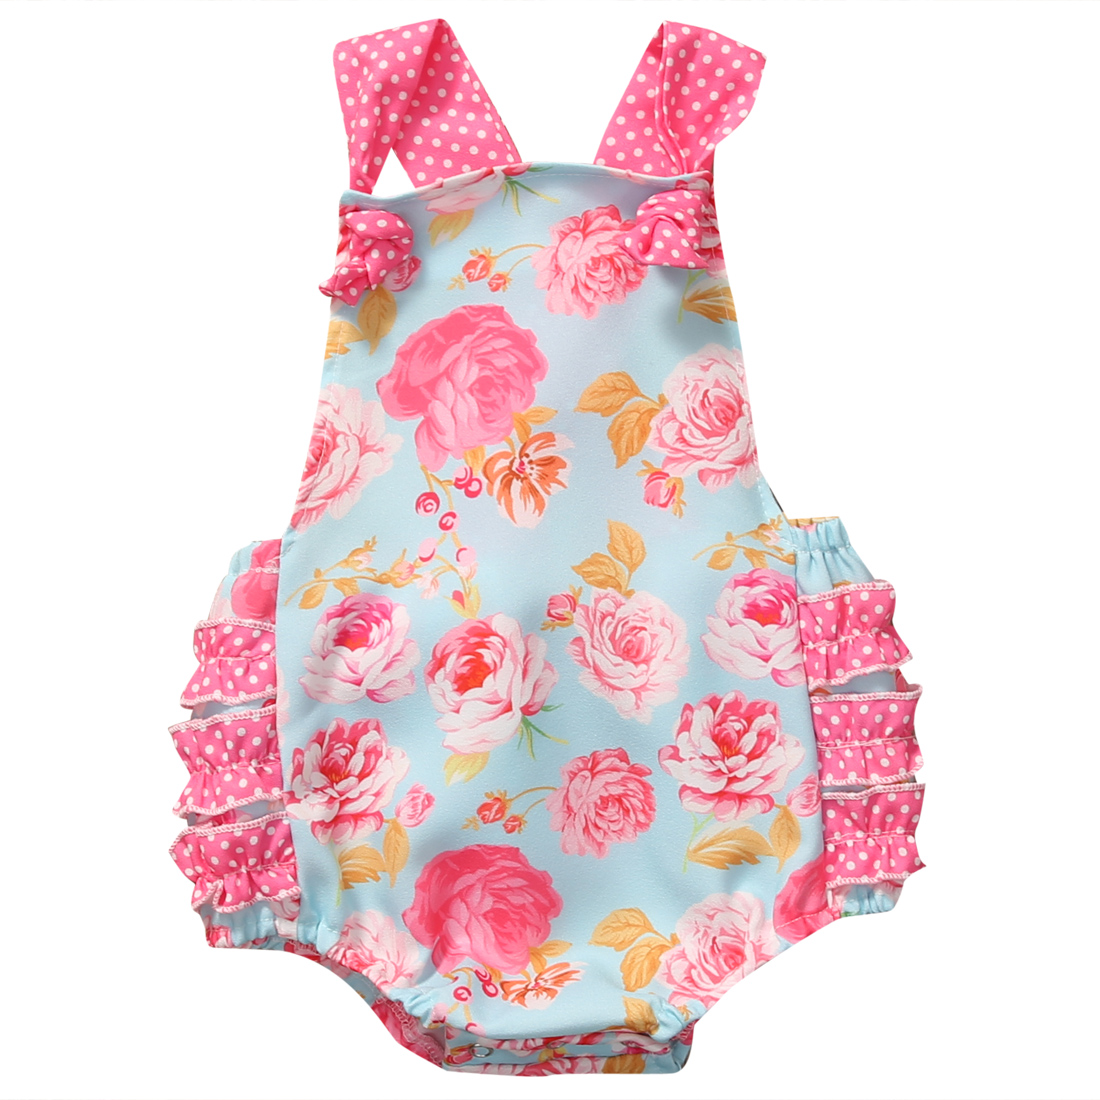 2017 Floral Baby Romper Newborn Infant Baby Girls Clothes Summer Sleeveless Ruffles Jumpsuit One Pieces Outfits Sunsuit 0-18M summer newborn infant baby girl romper short sleeve floral romper jumpsuit outfits sunsuit clothes